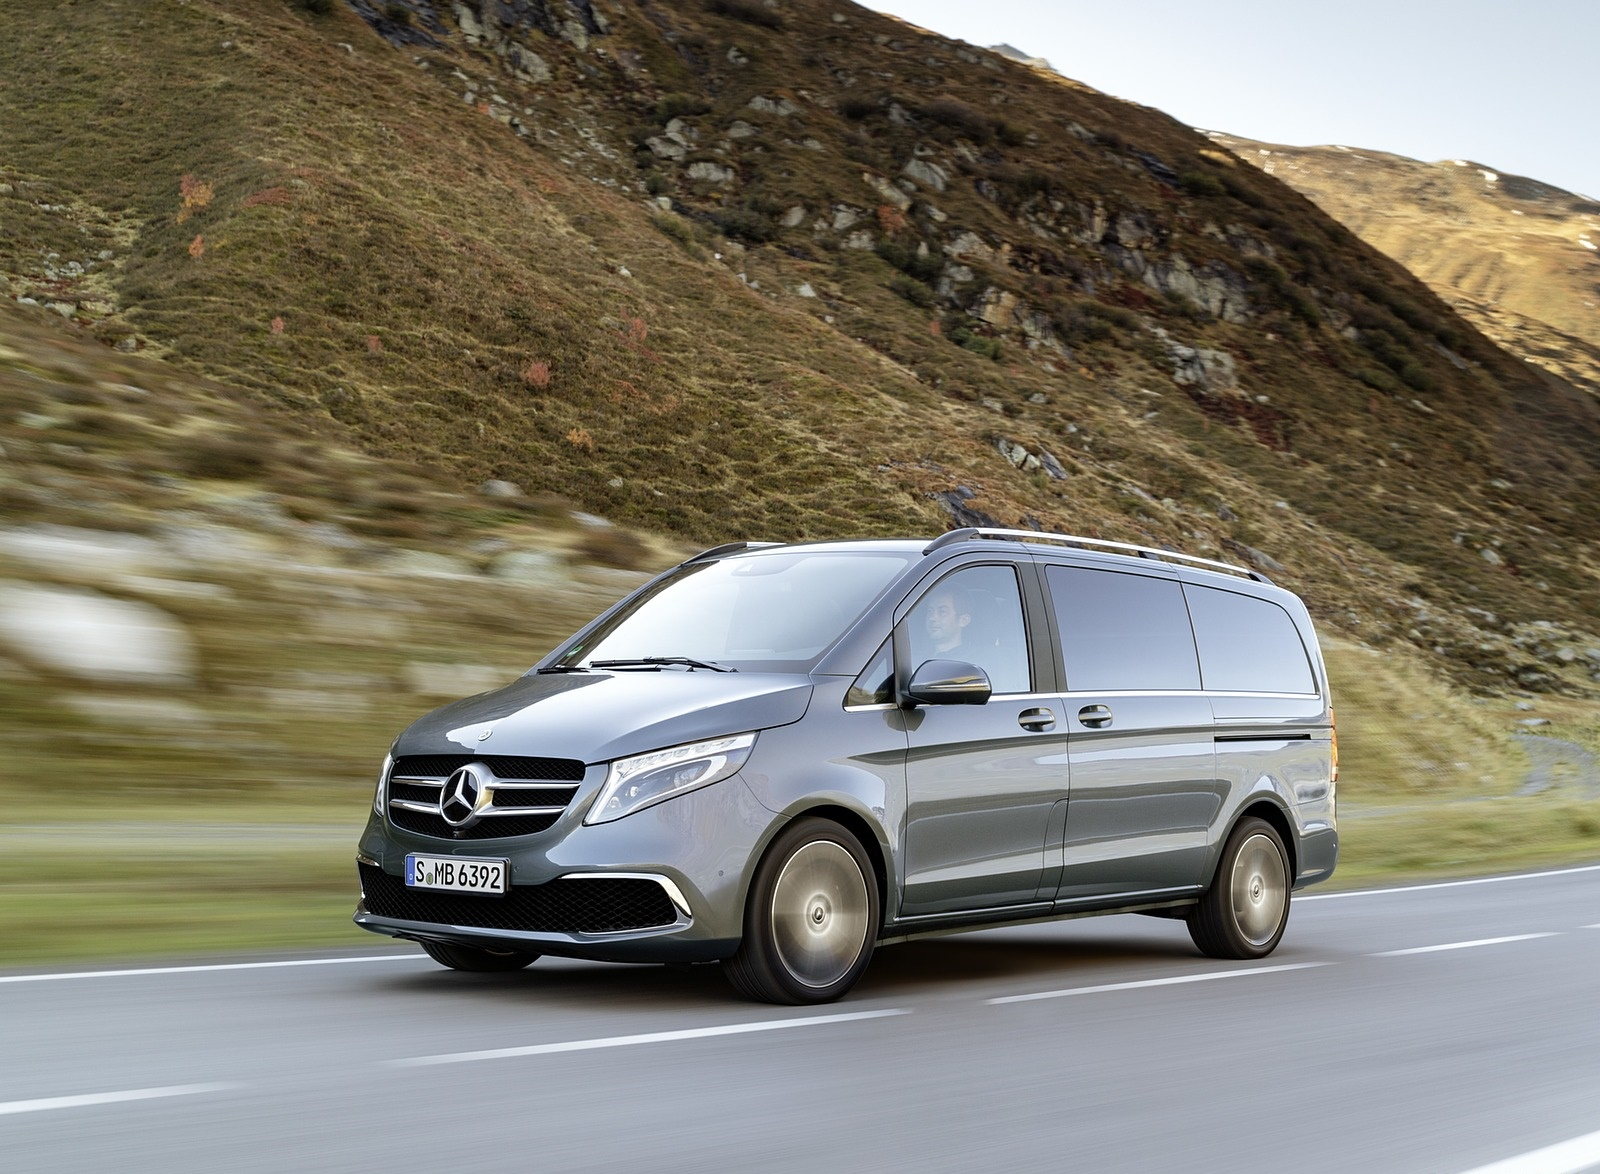 2019 Mercedes-Benz V-Class EXCLUSIVE Line (Color: Selenit Grey Metallic) Front Three-Quarter Wallpaper (7)